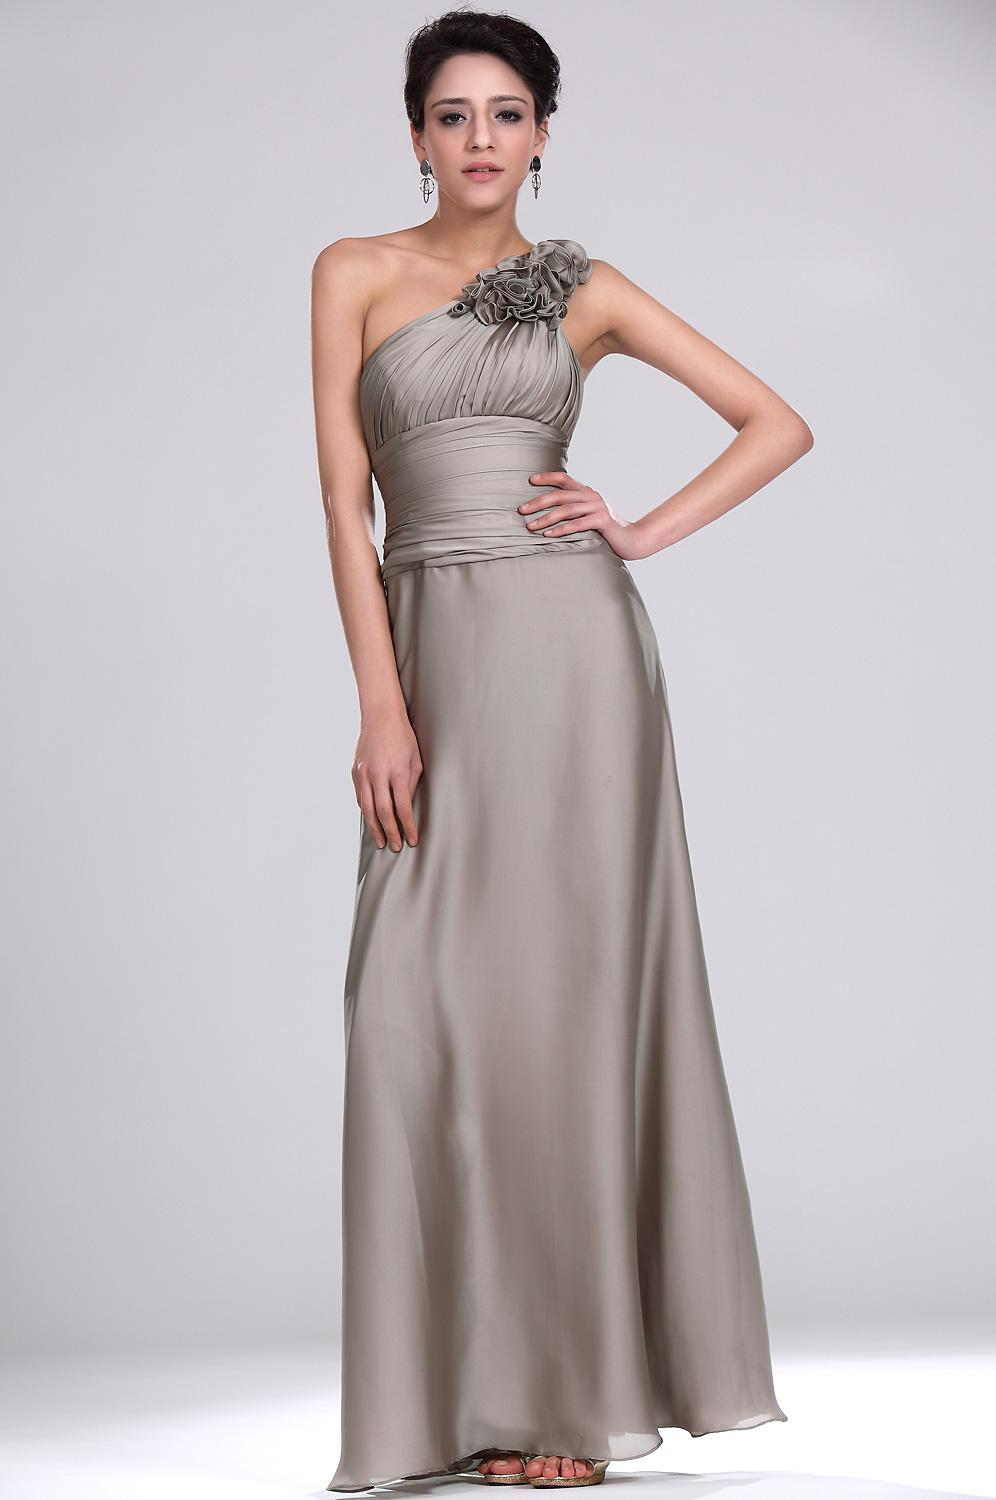 BRIDESMAID DRESSES 2013